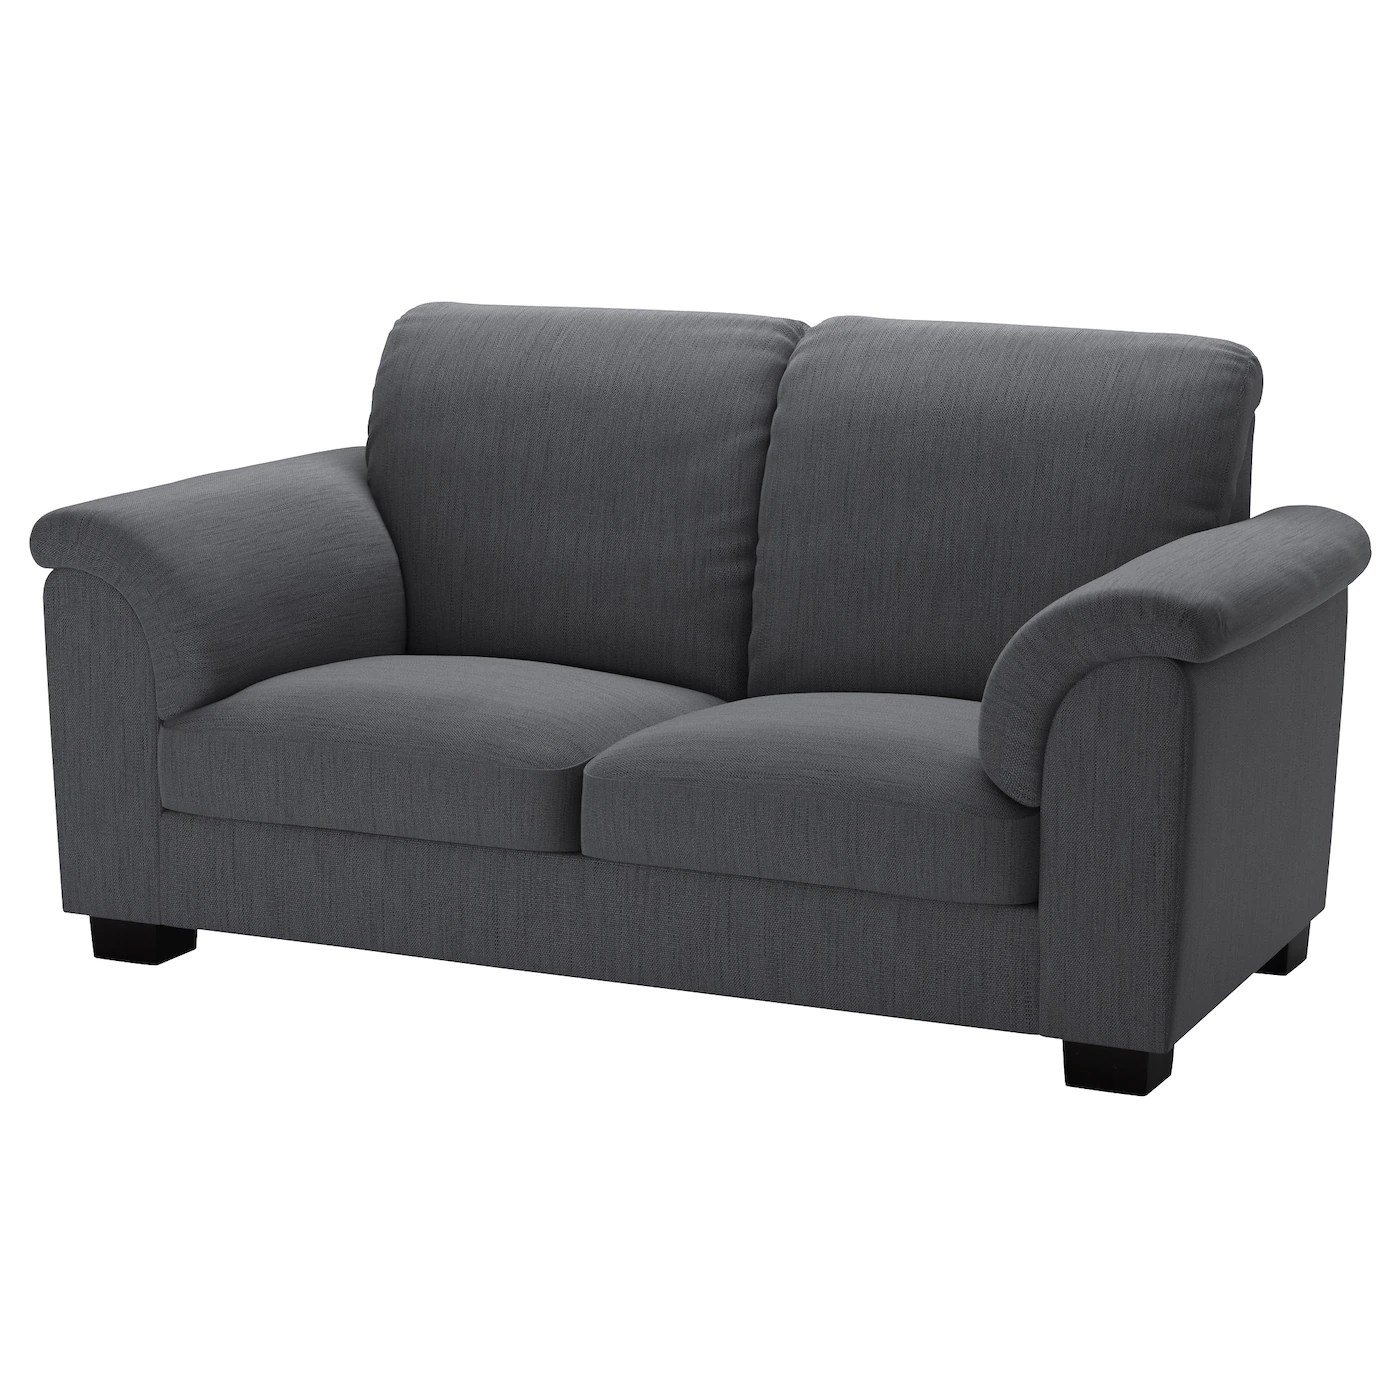 Chesterfield Sofa Online Uk Sofas Settees Couches More Ikea